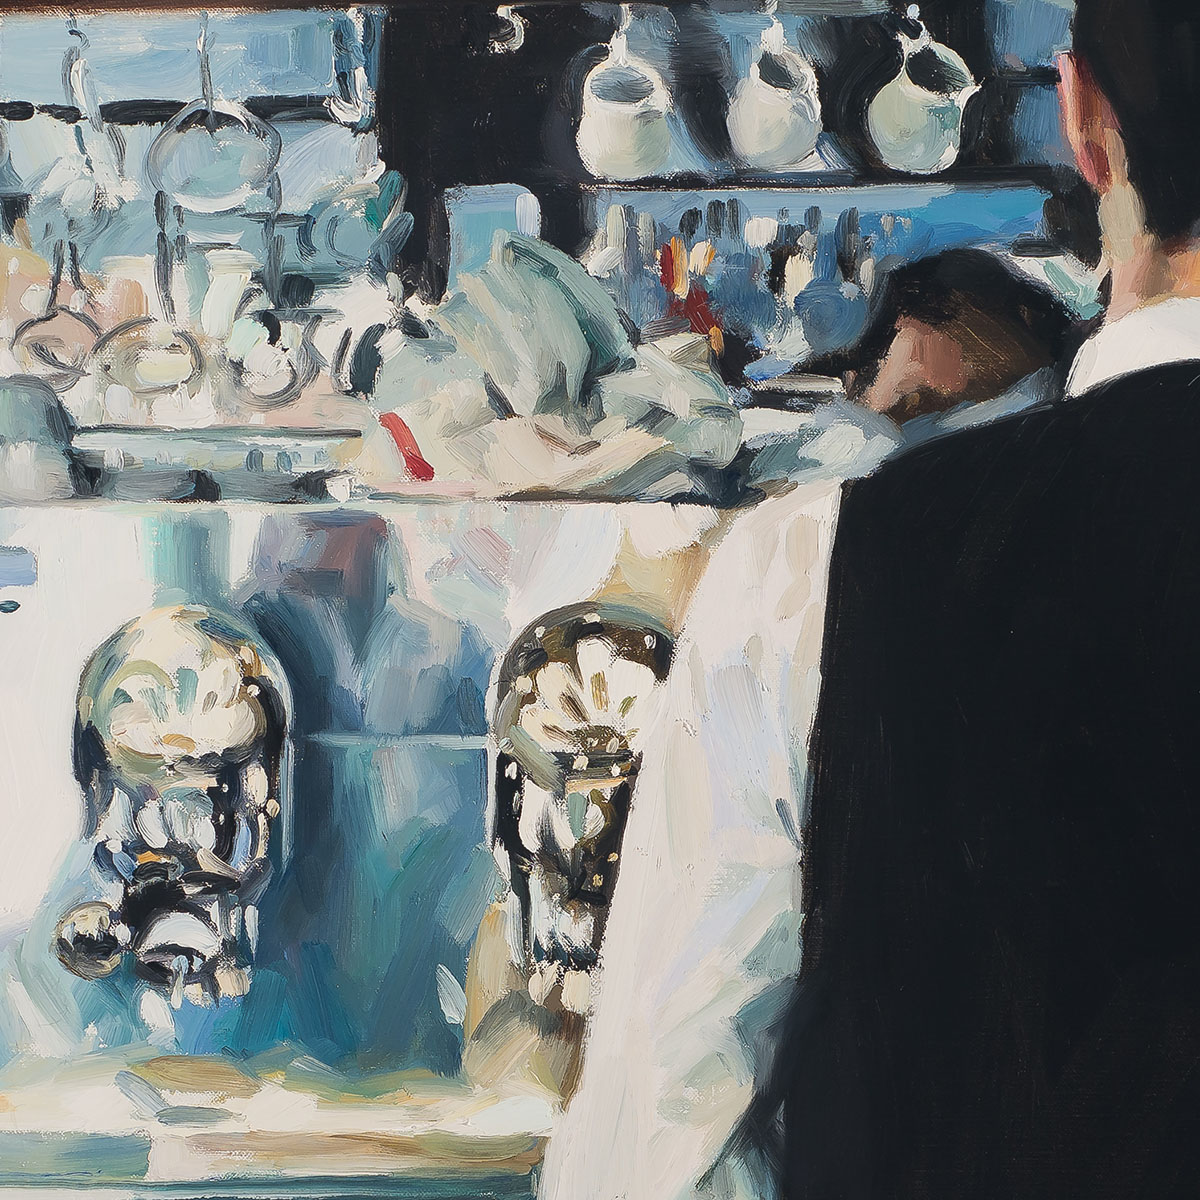 Cafe-by-Paul Oxborough - detail